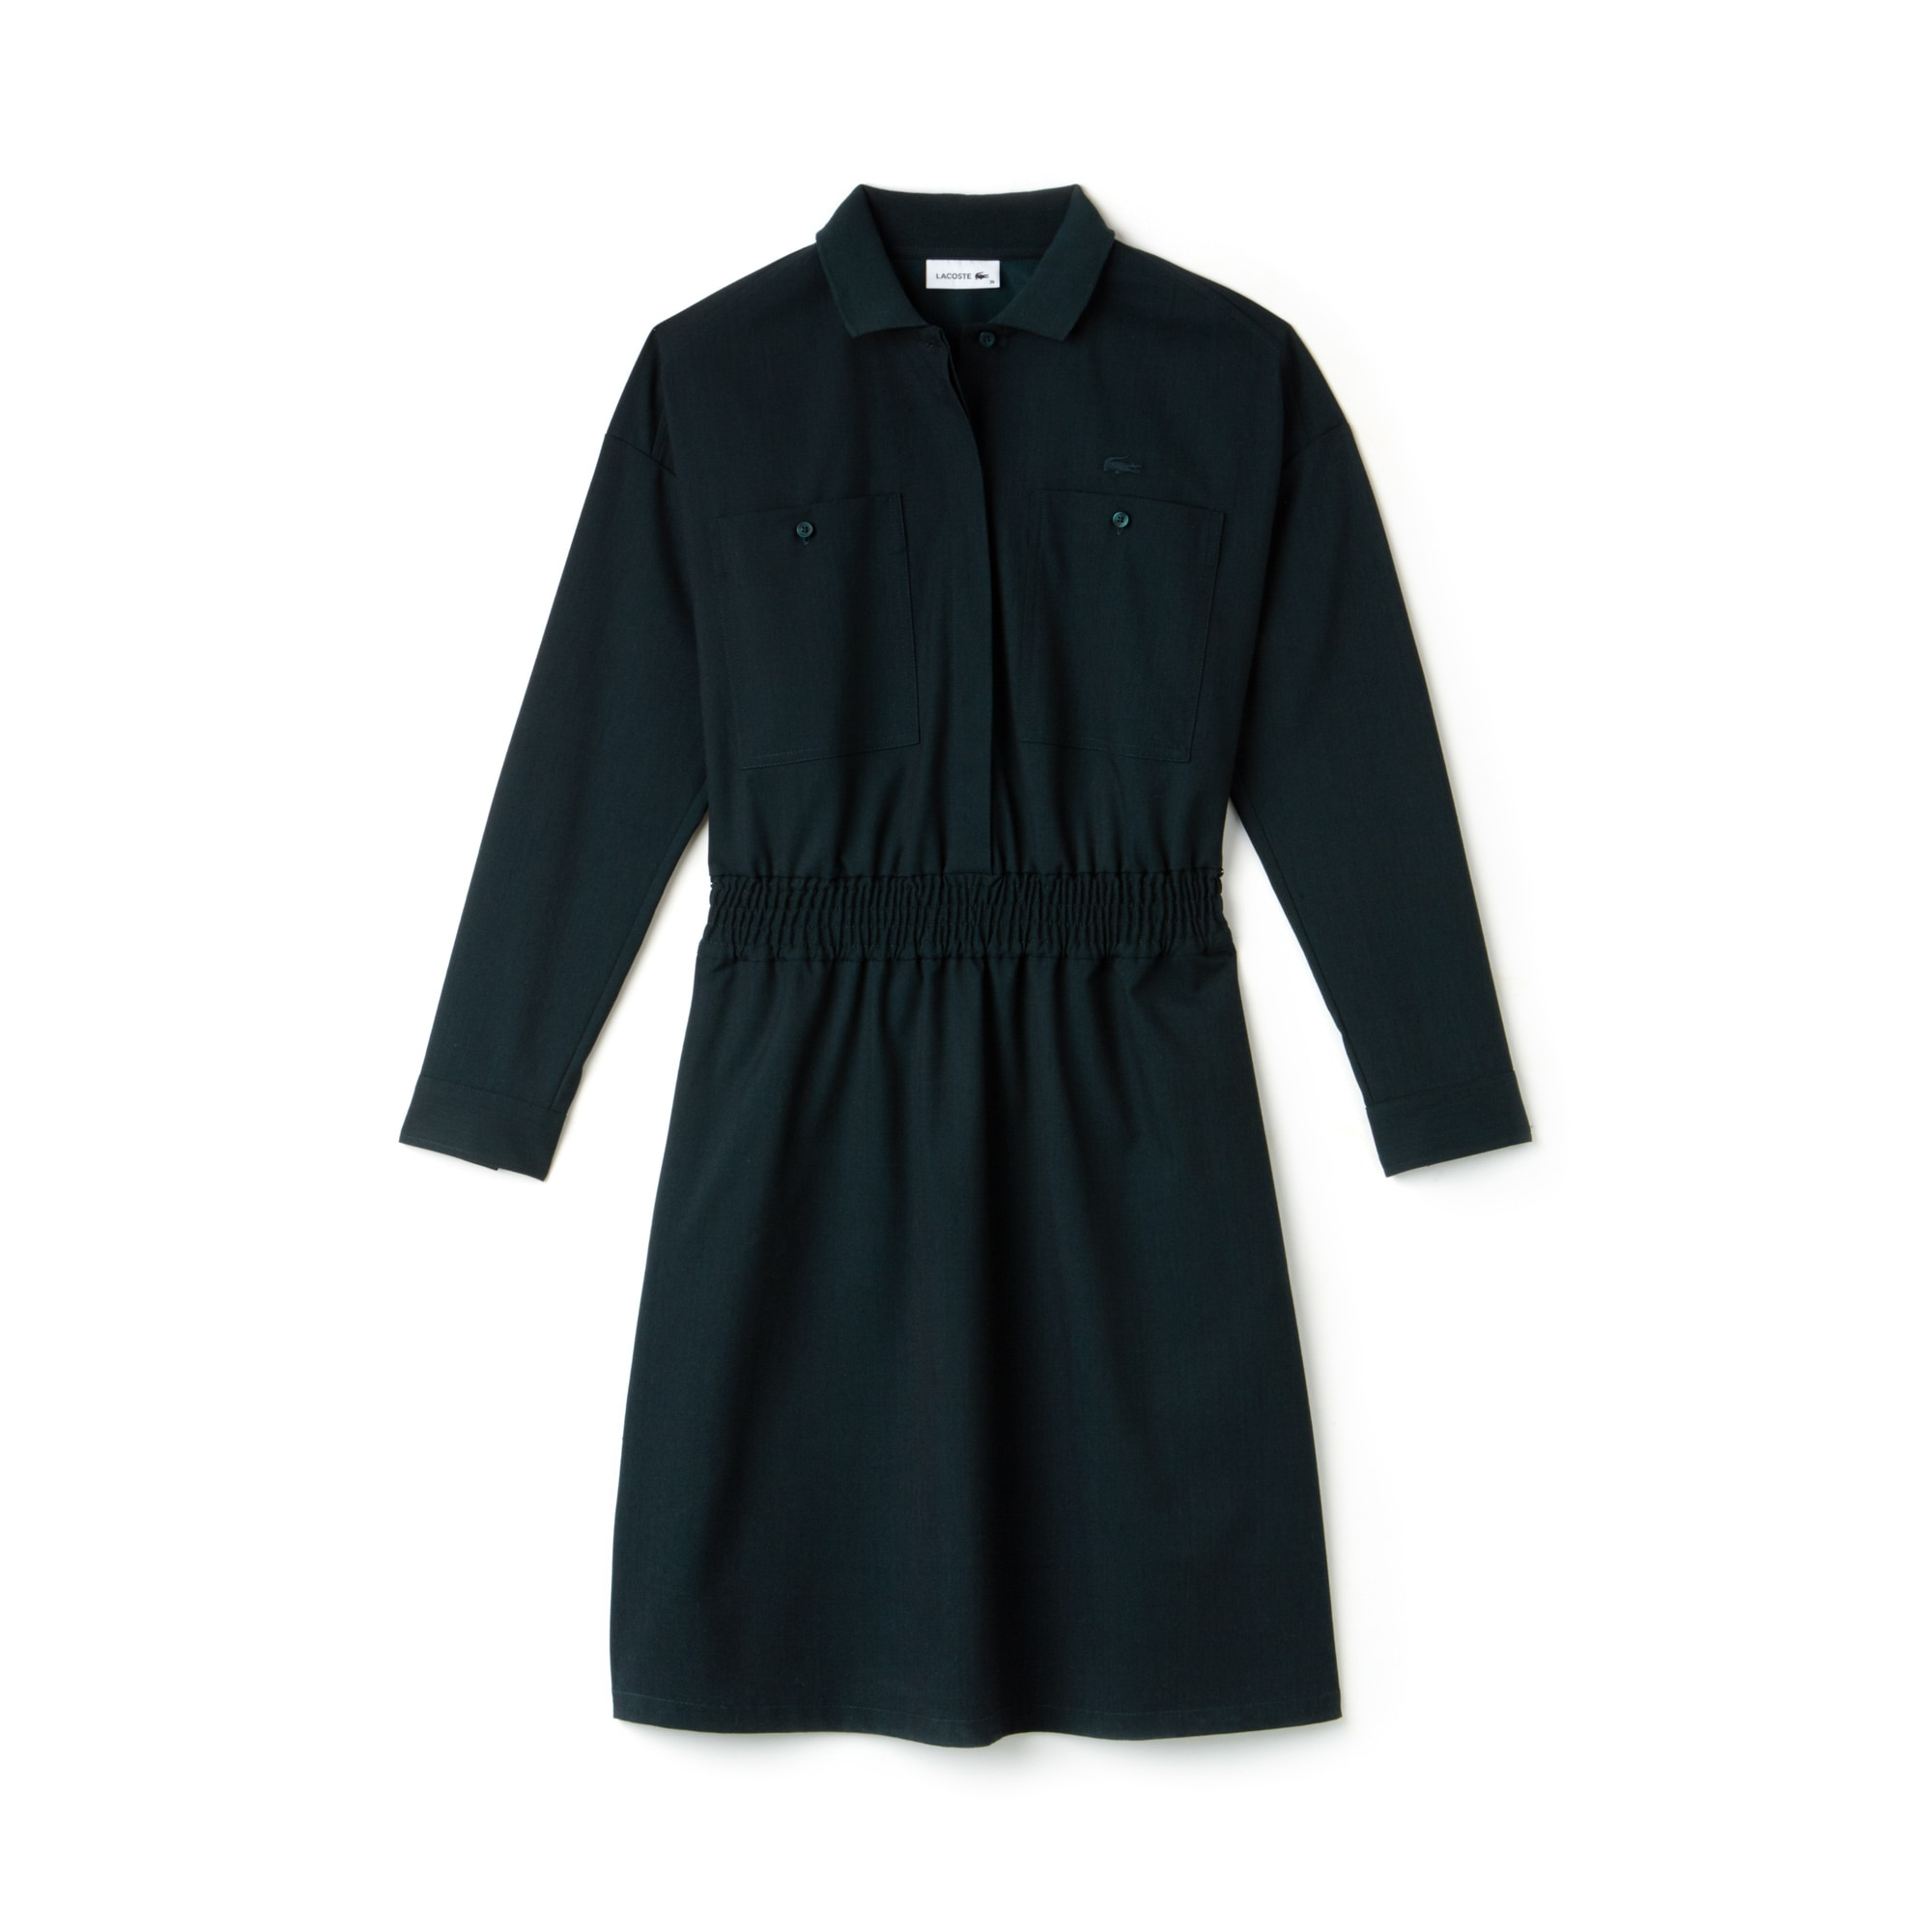 Women's Chest Pockets Fitted Stretch Wool Knit Polo Dress